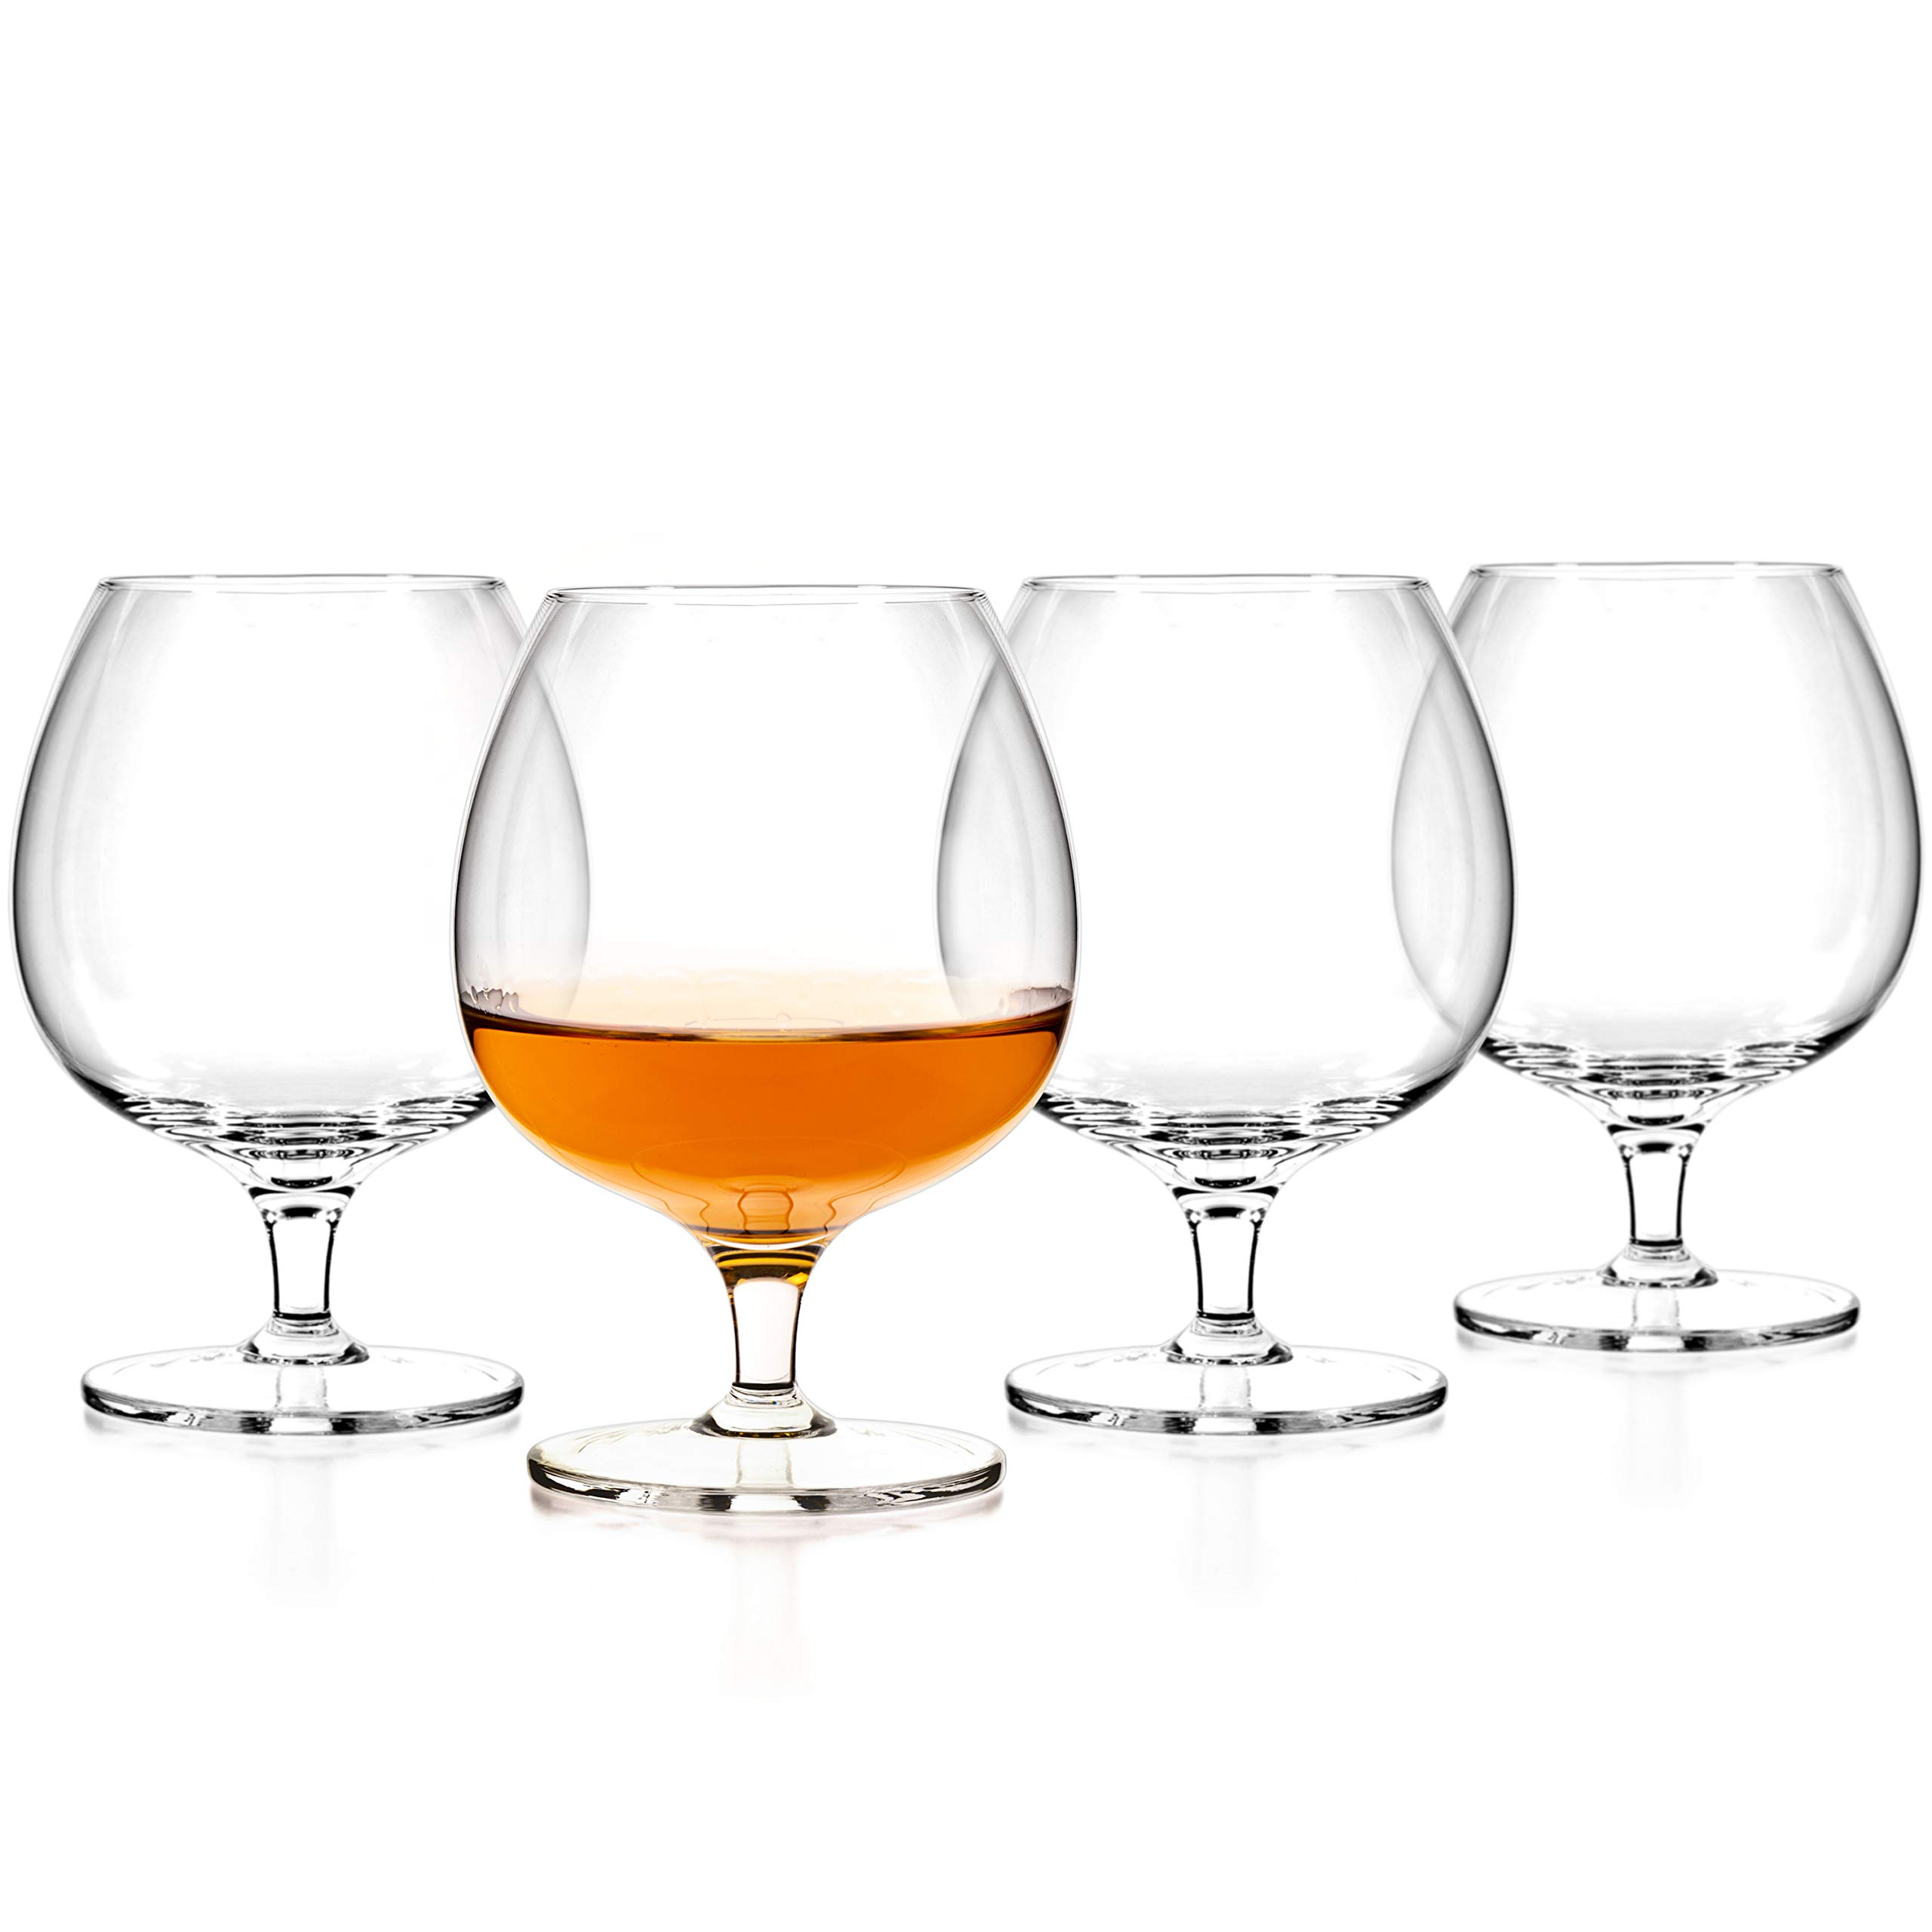 Luxbe - Cognac & Brandy Crystal Small Glasses Snifter, Set of 4 - Handcrafted - 100% Lead-Free Crystal Glass - Great for Spirits Drinks - 12-ounce